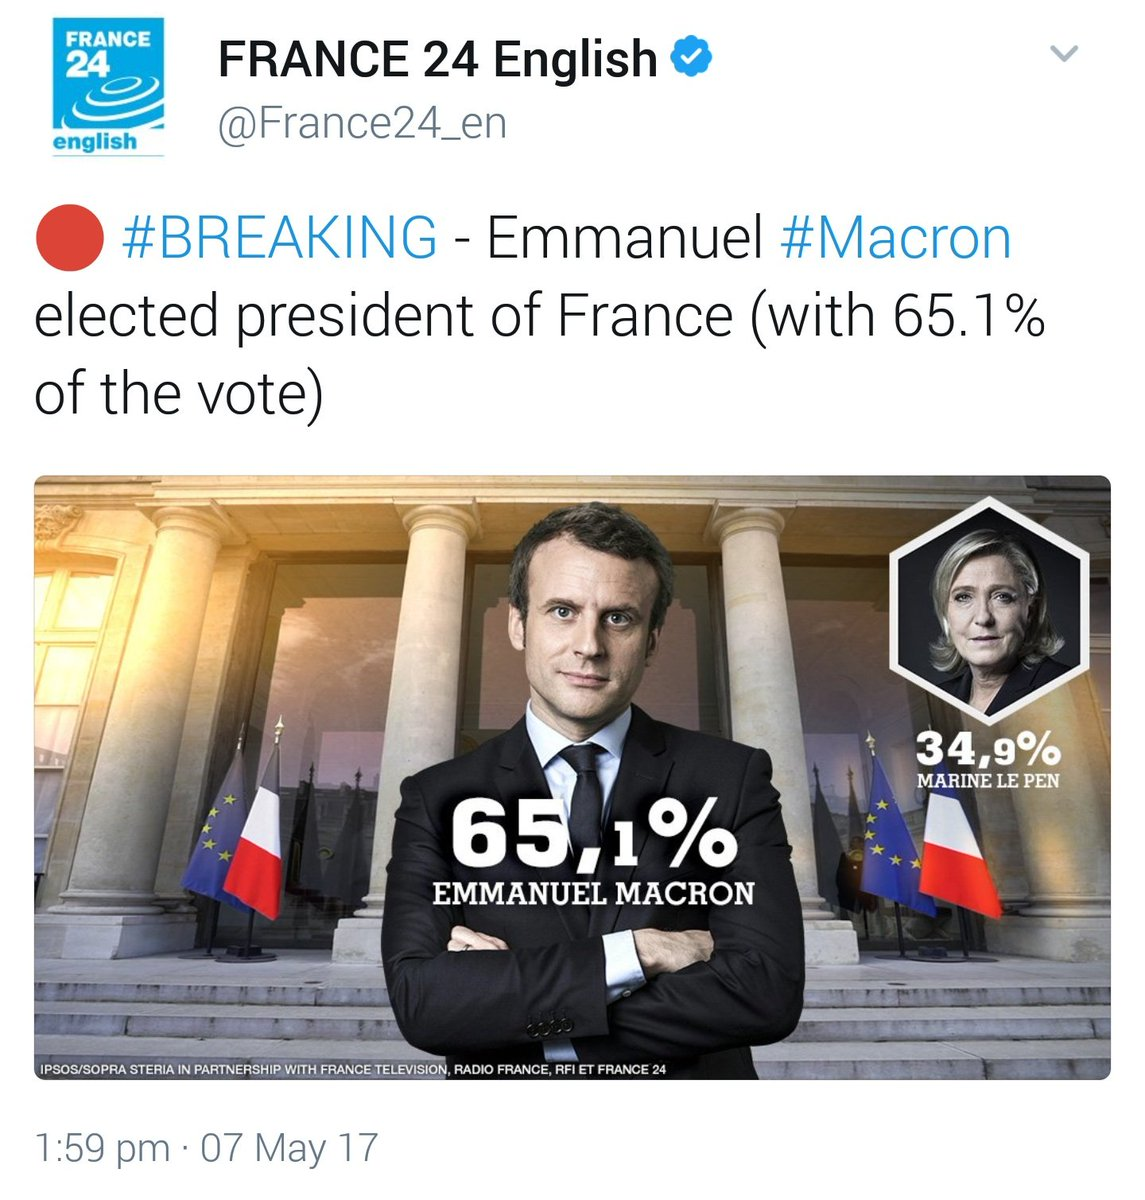 As is the custom in France, Macron has imprisoned his defeated rival's soul in another dimension. https://t.co/cVLdvQuNMp